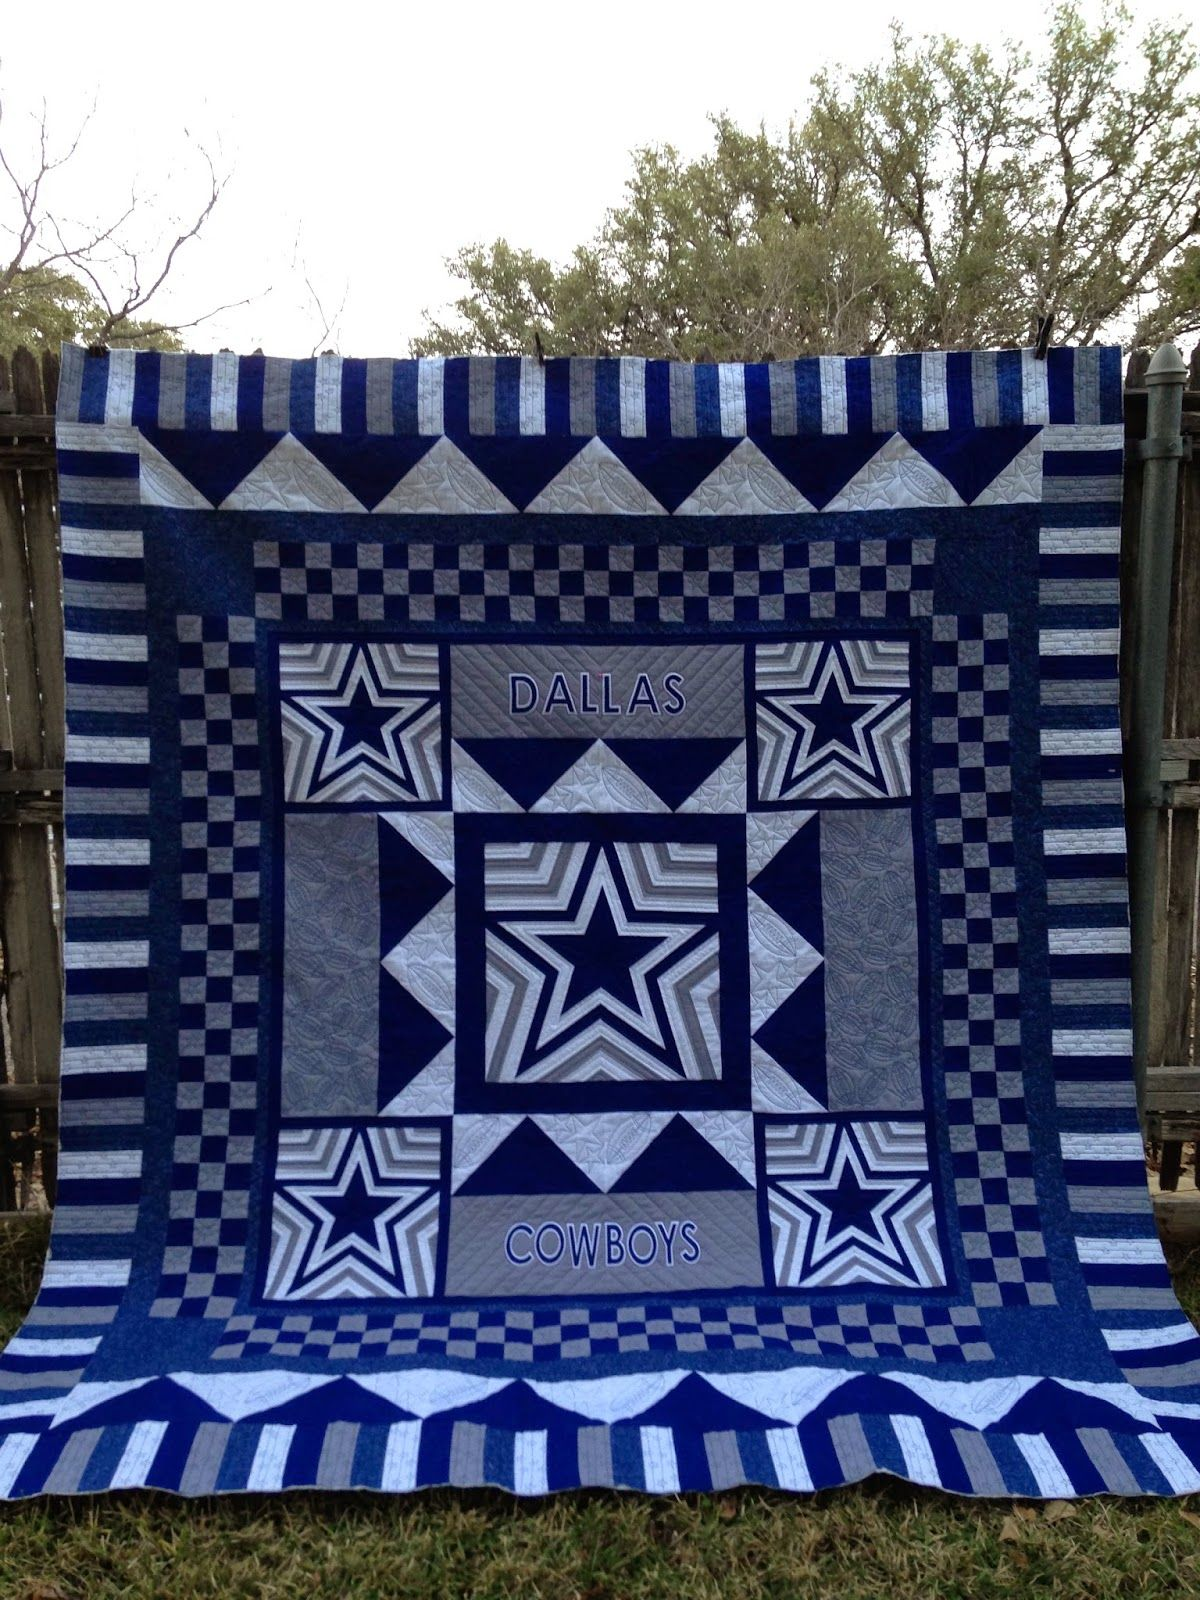 The Quilting Queen Online: Dallas Cowboys Quilting Eye Candy ... : quilting queen - Adamdwight.com